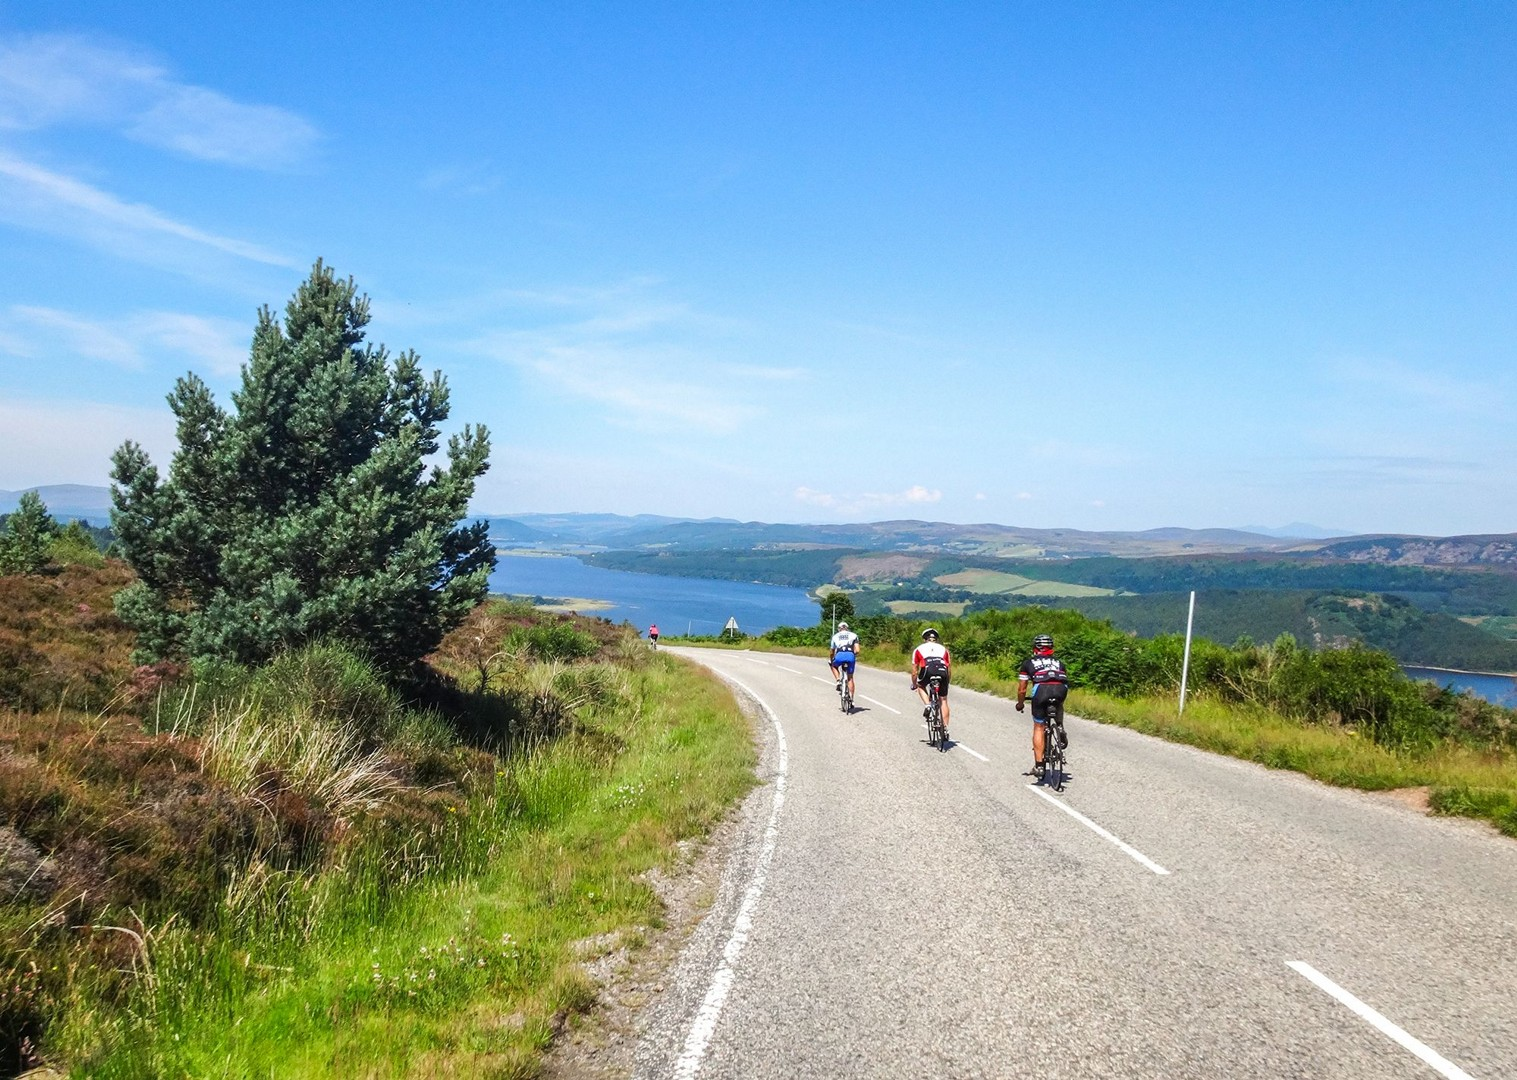 uk-guided-road-cycling-holiday-saddle-skedaddle-lejog-route-in-britain.jpg - UK - Land's End to John O'Groats Classic (16 days) - Guided Road Cycling Holiday - Road Cycling